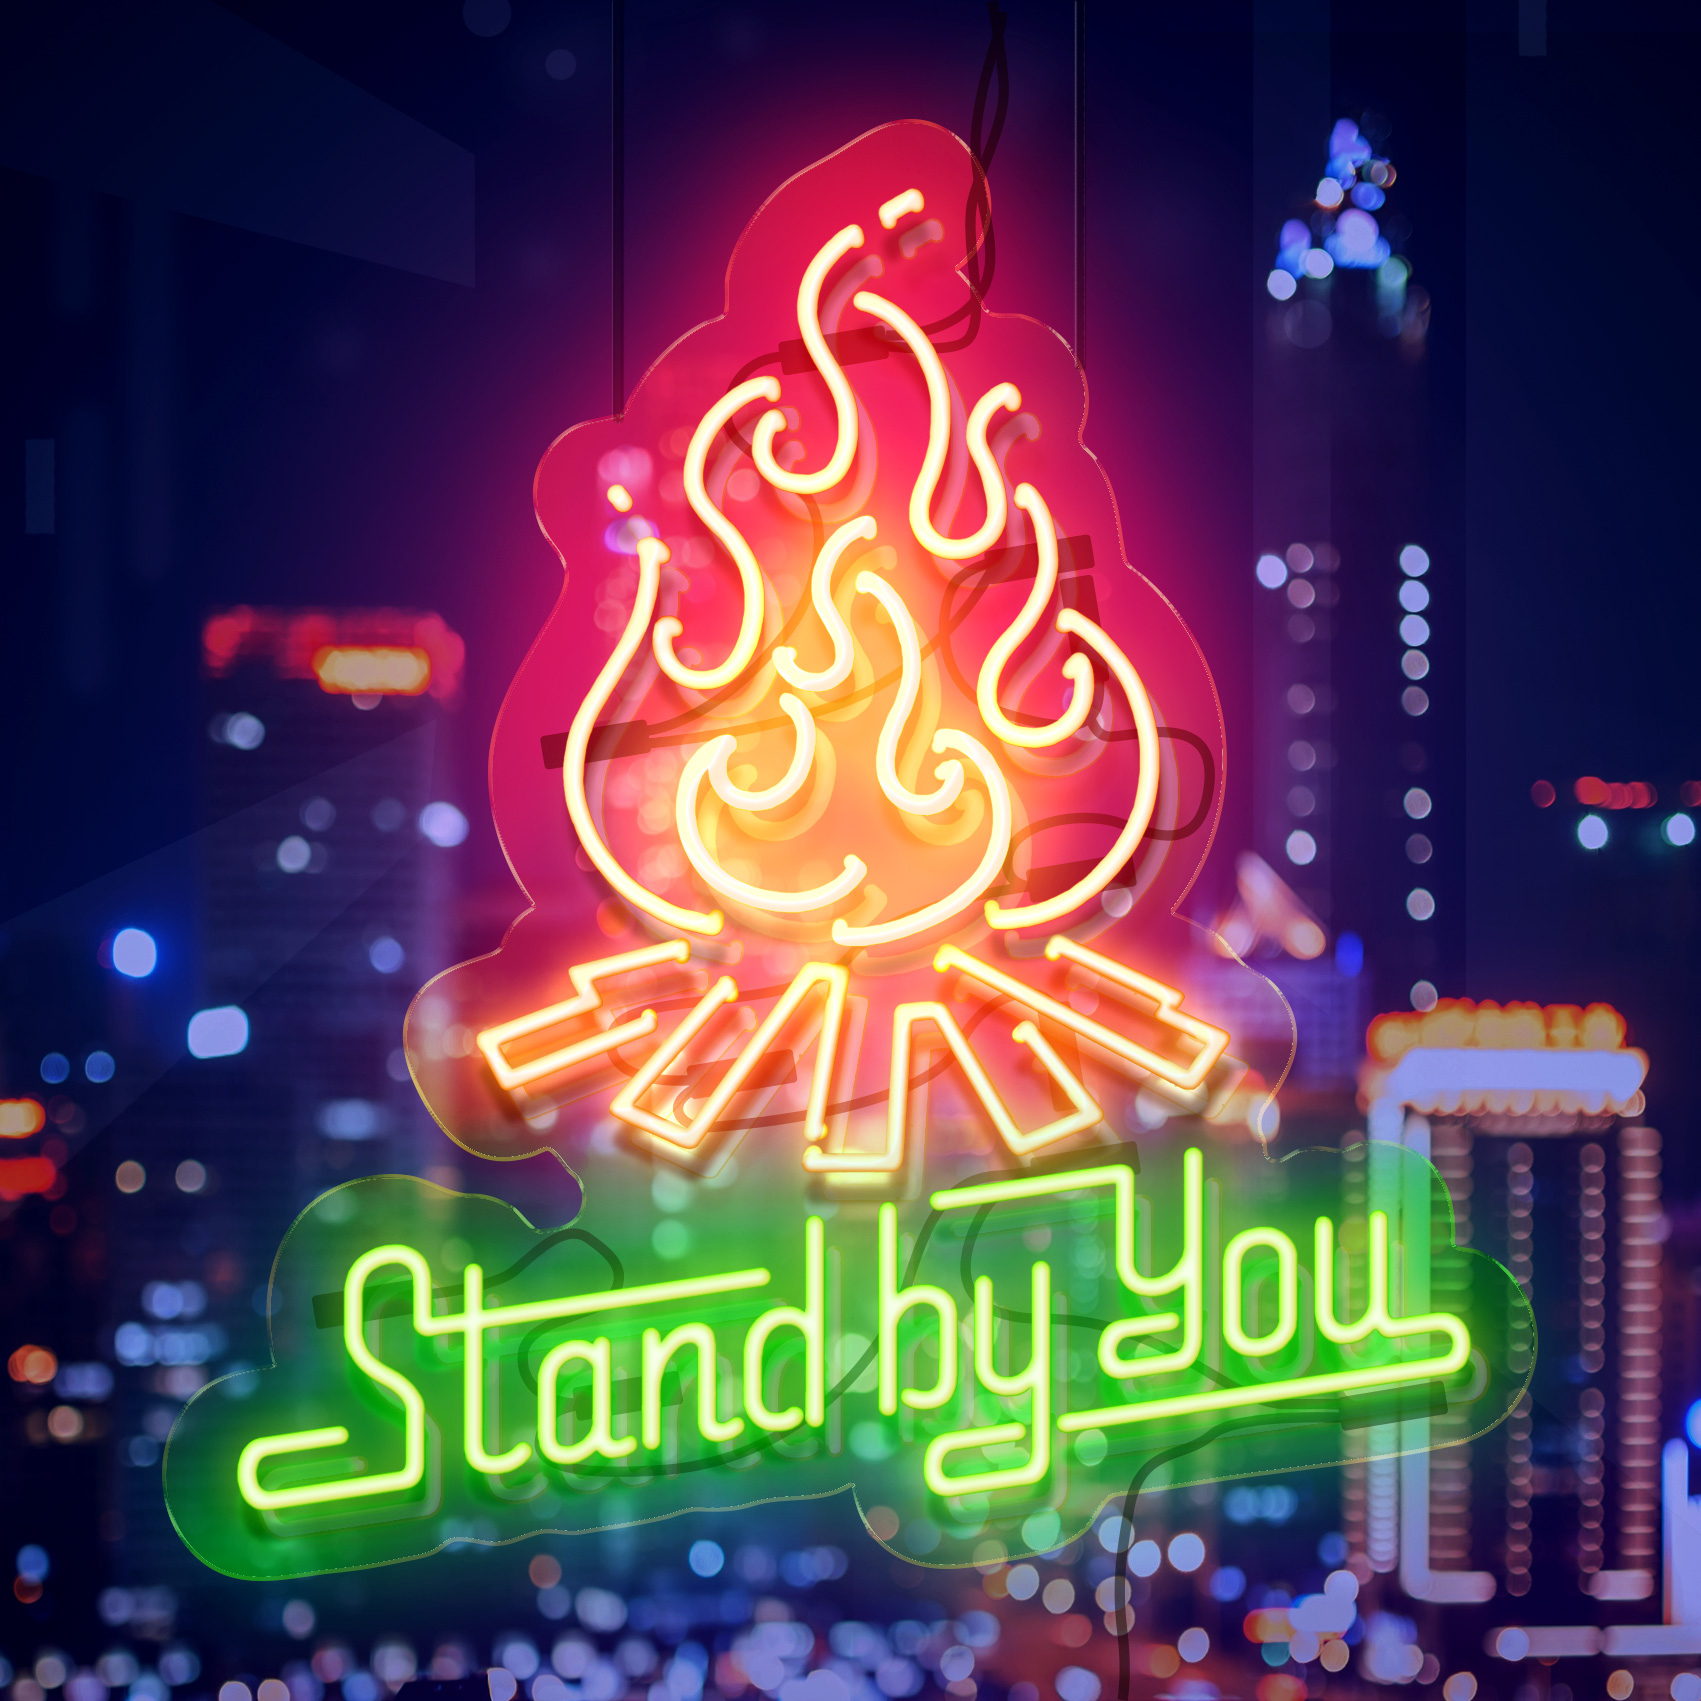 Official髭男dism EP「Stand By You EP」初回限定盤